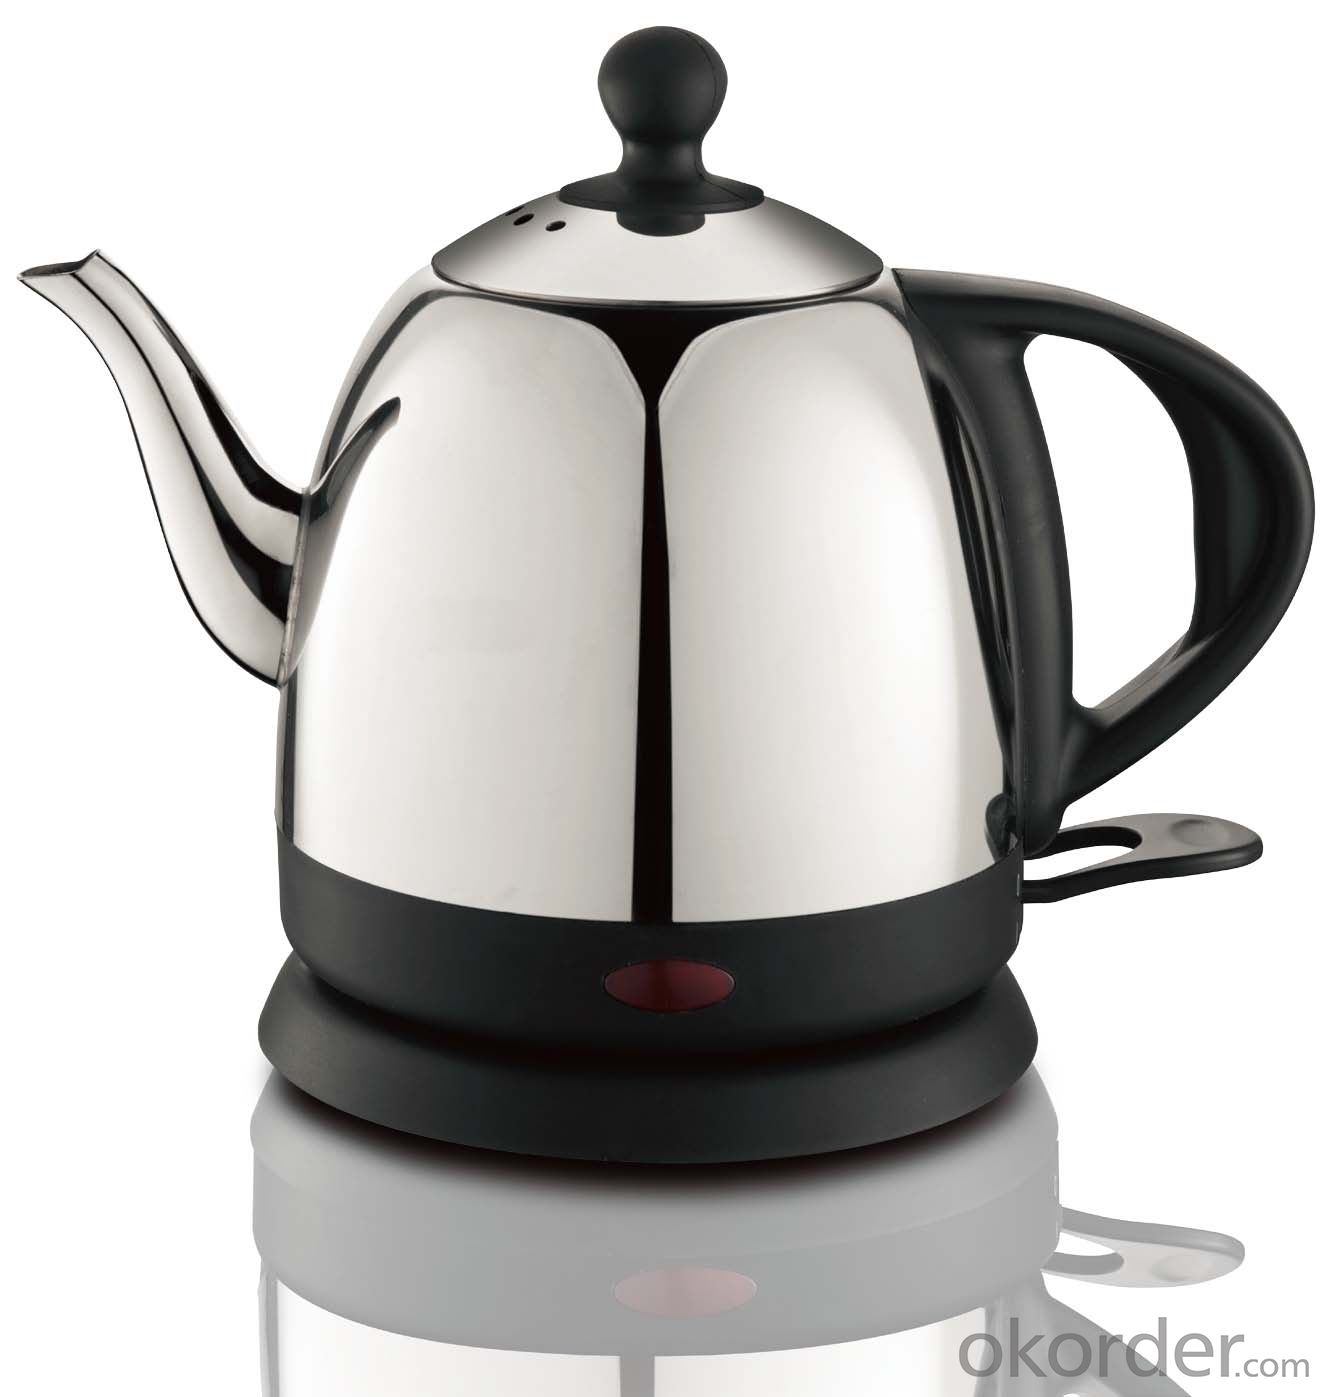 0.8  Litre Stainless Steel Electric Kettle with Transparent water window